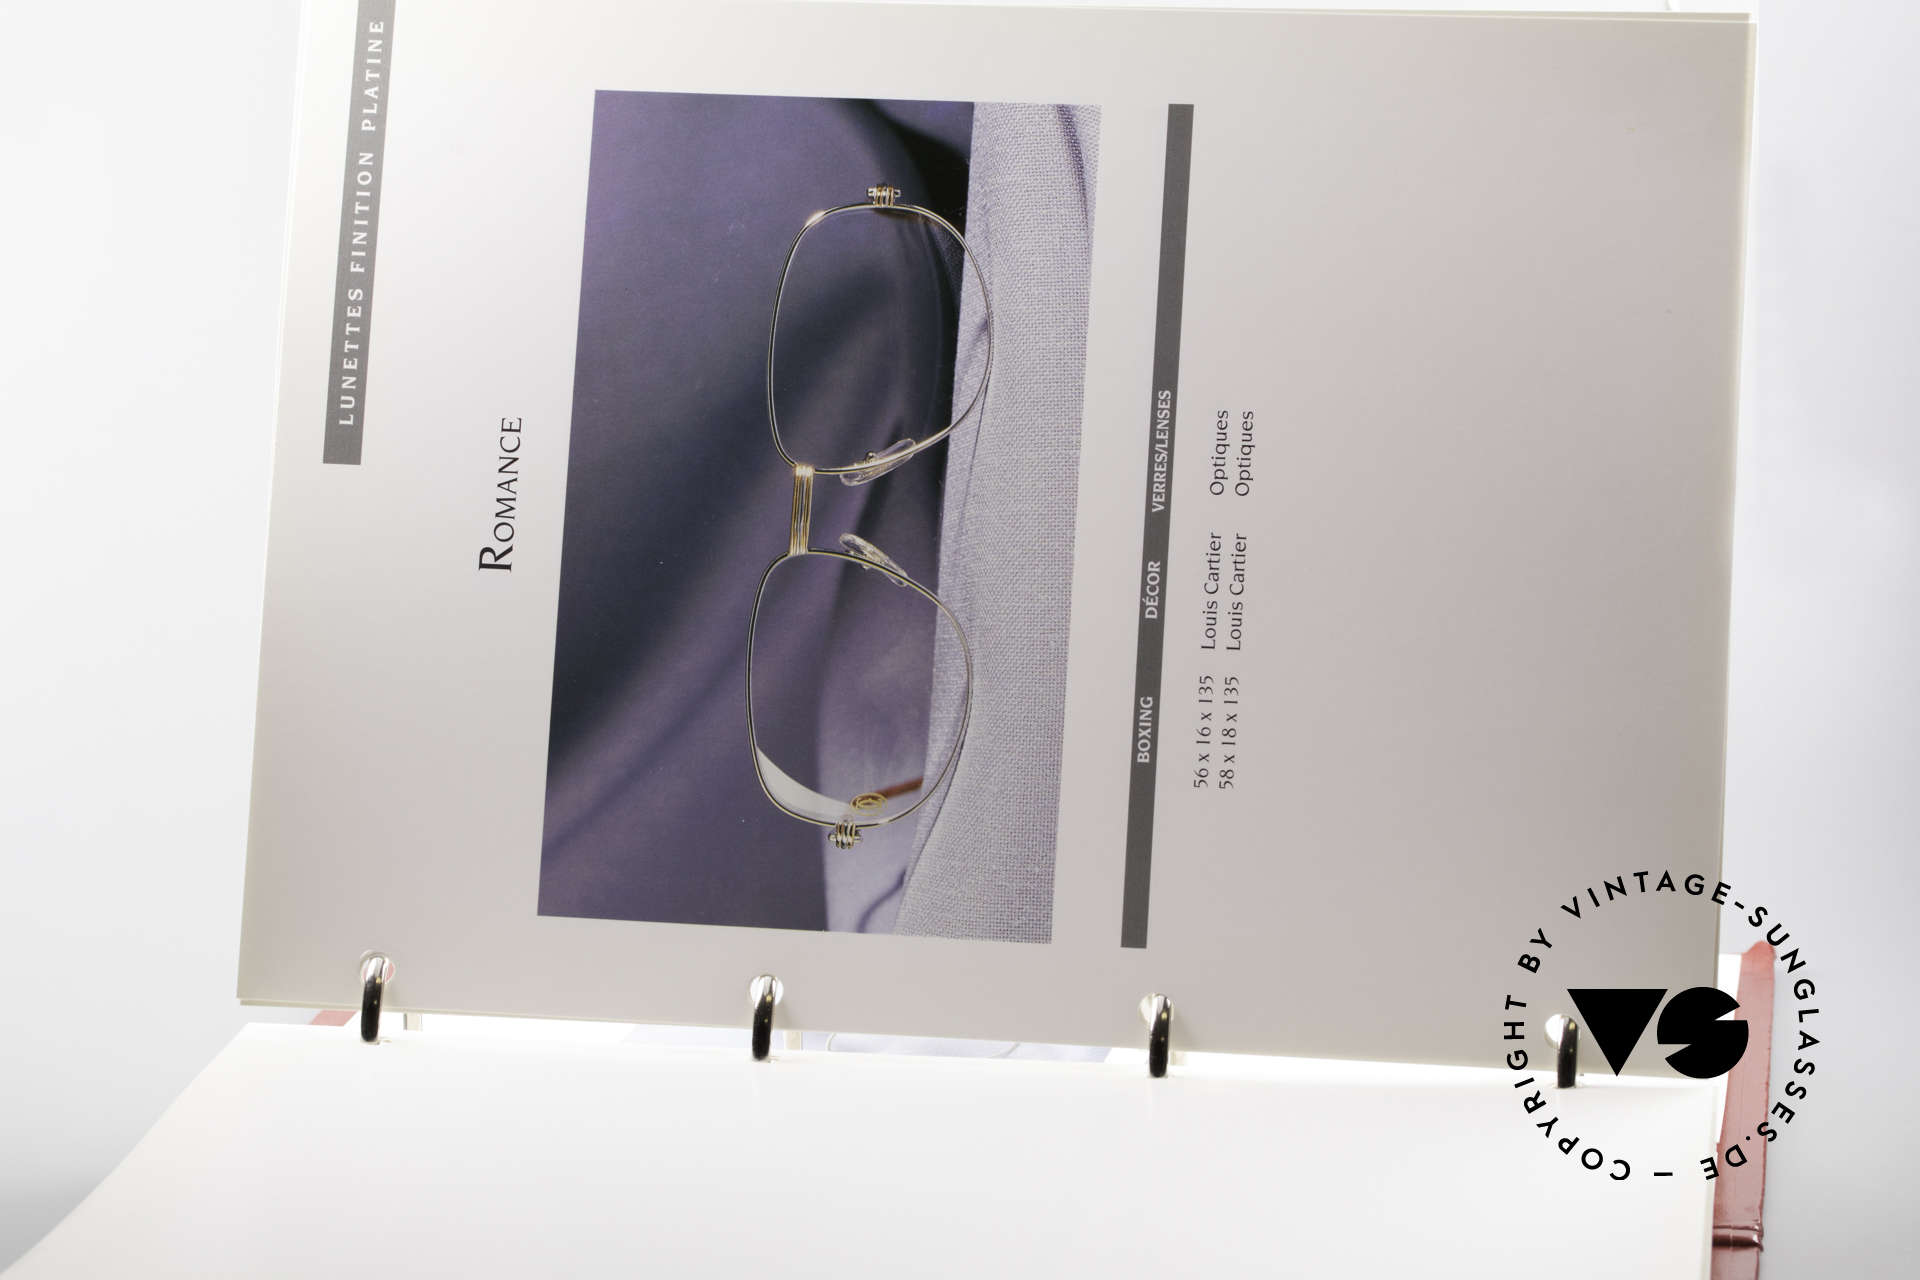 Cartier_ Catalog Cartier Lunettes Eyewear, Size: extra large, Made for Men and Women